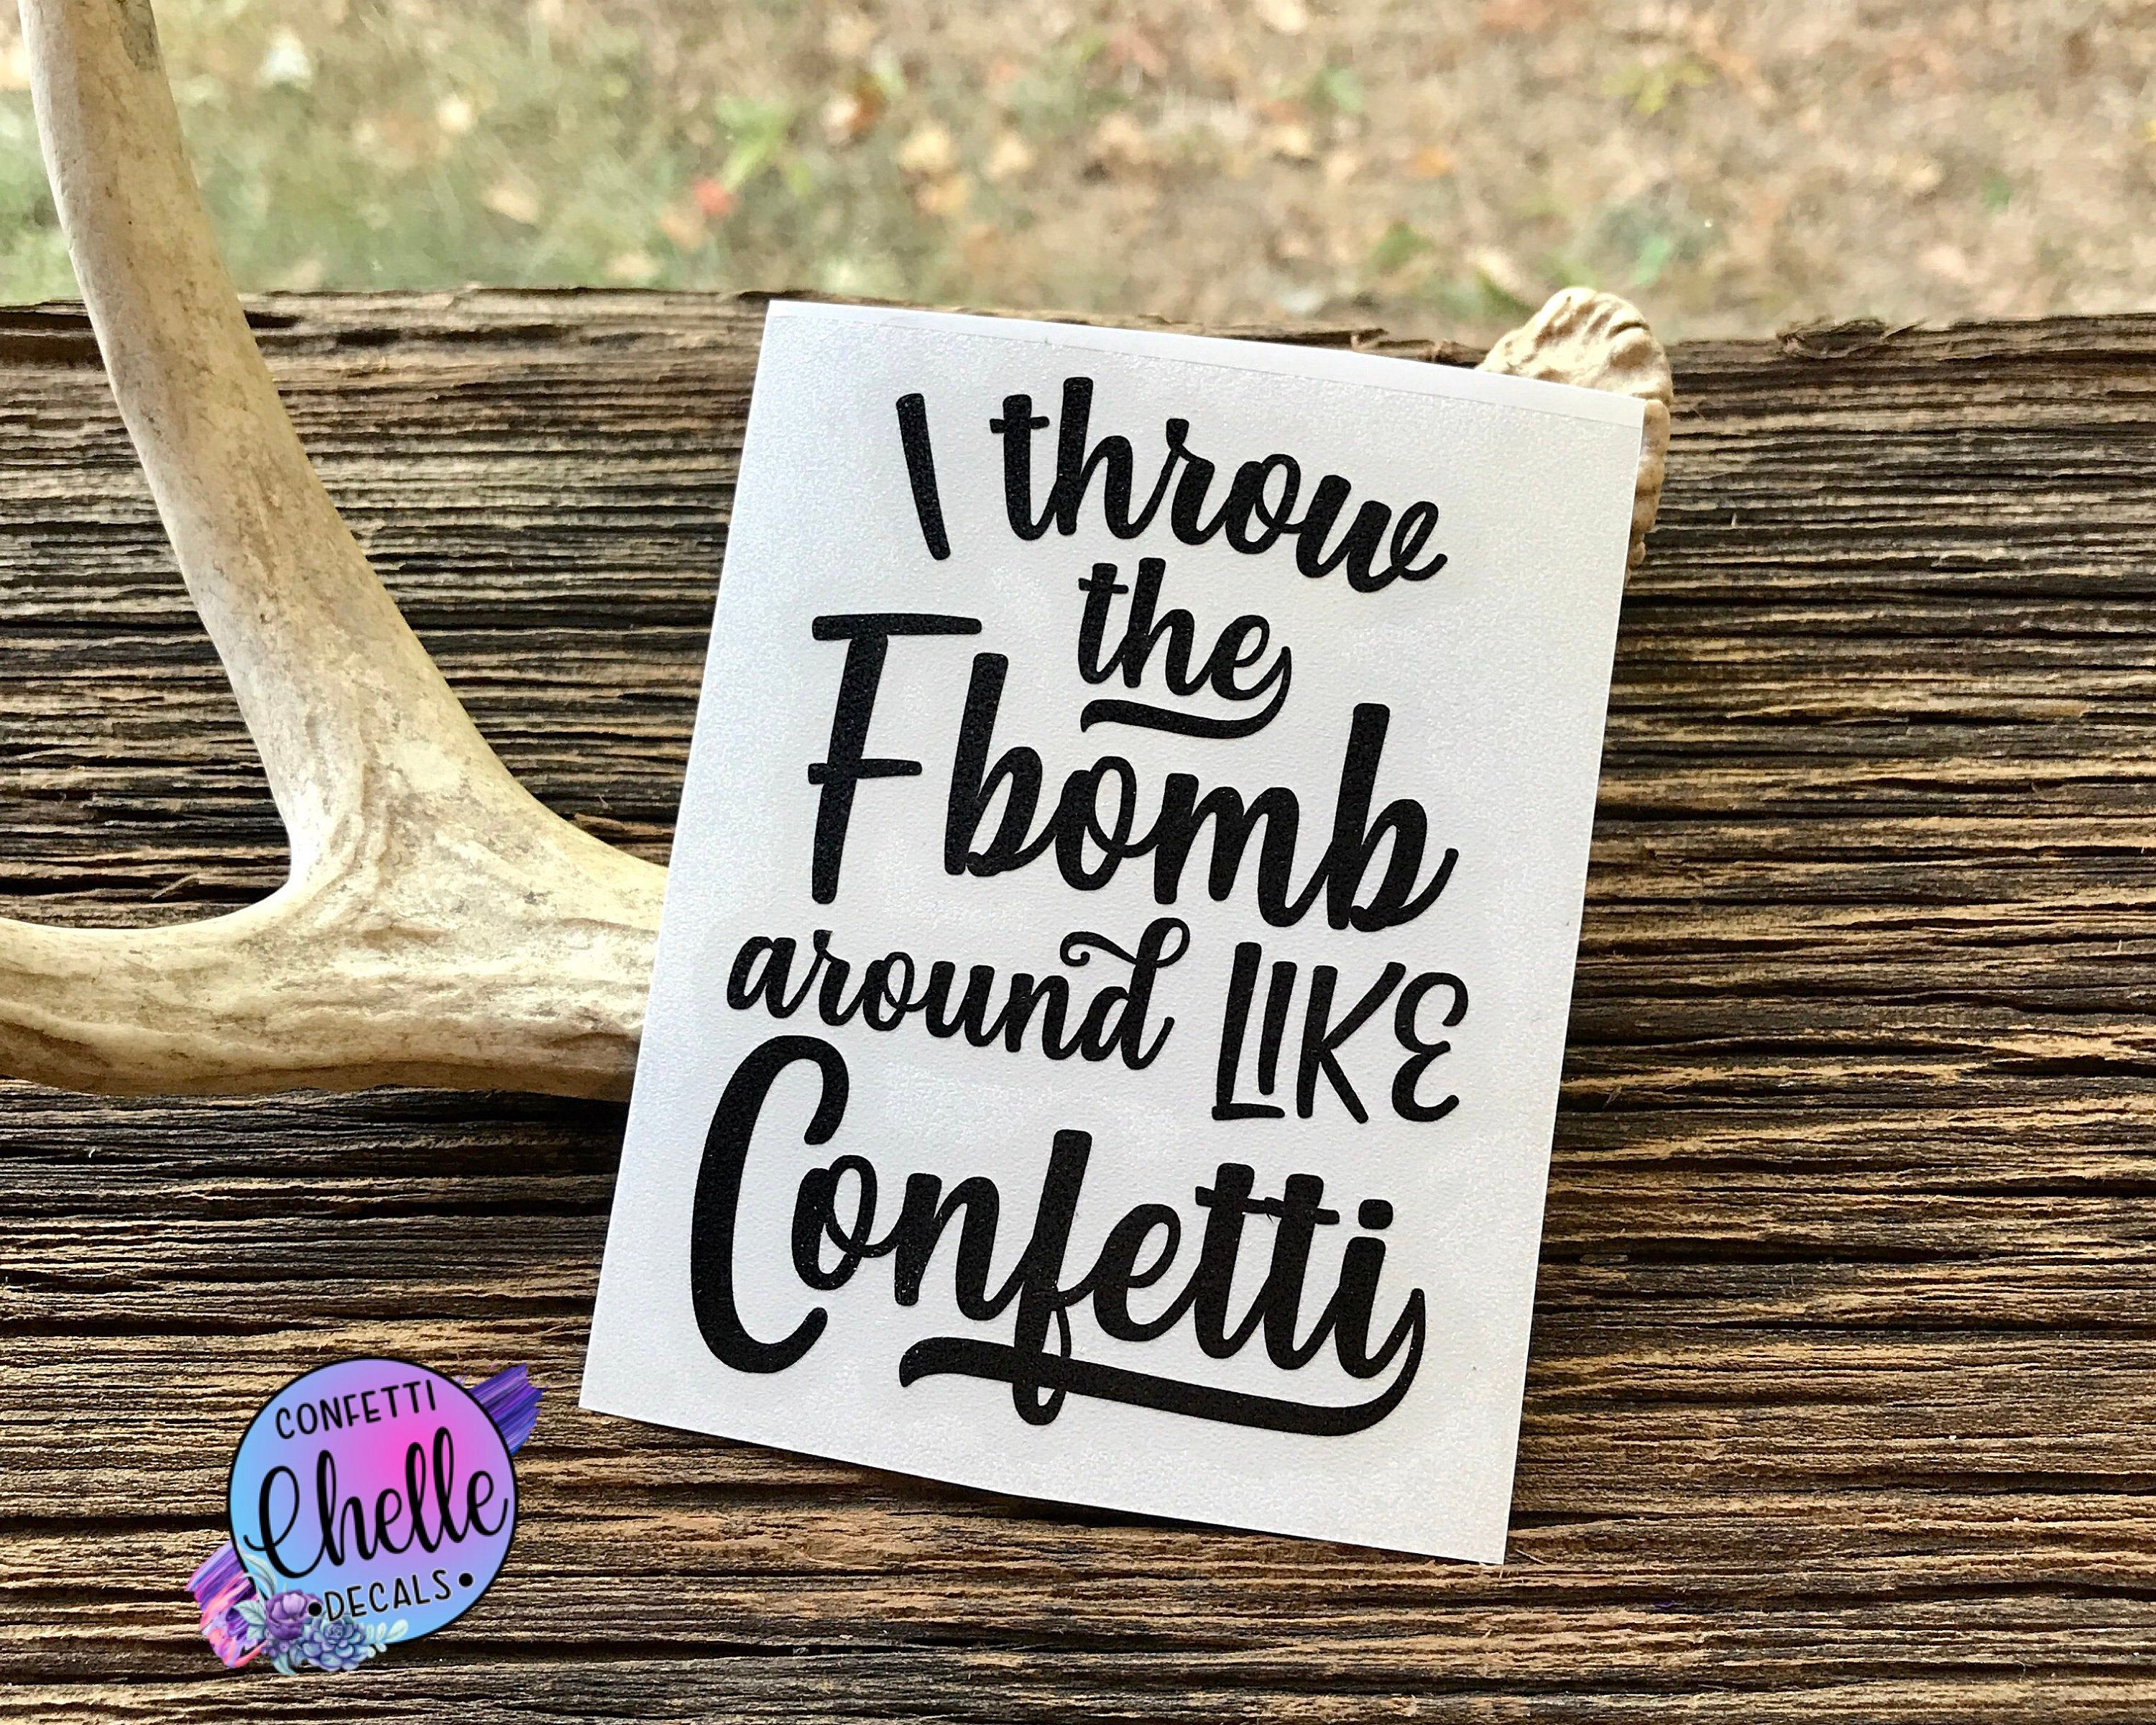 I Throw The F Bomb Around Like Confetti Decal Sticker Etsy Confetti Decals Laptop Decal Wine Bottle Decals [ 2400 x 3000 Pixel ]